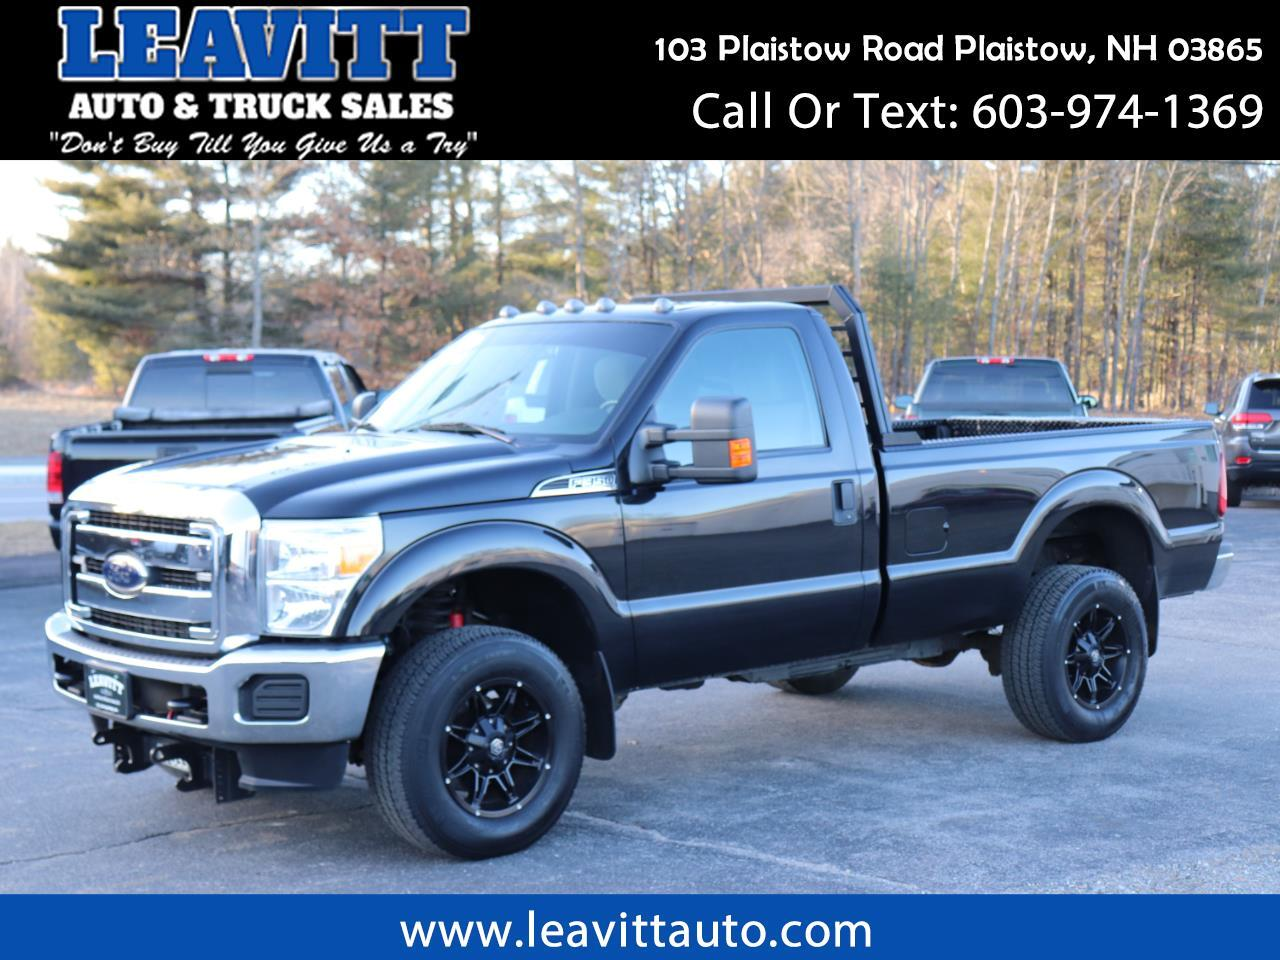 2012 Ford F-350 SD XLT REGULAR CAB 6.7L POWERSTROKE DIESEL